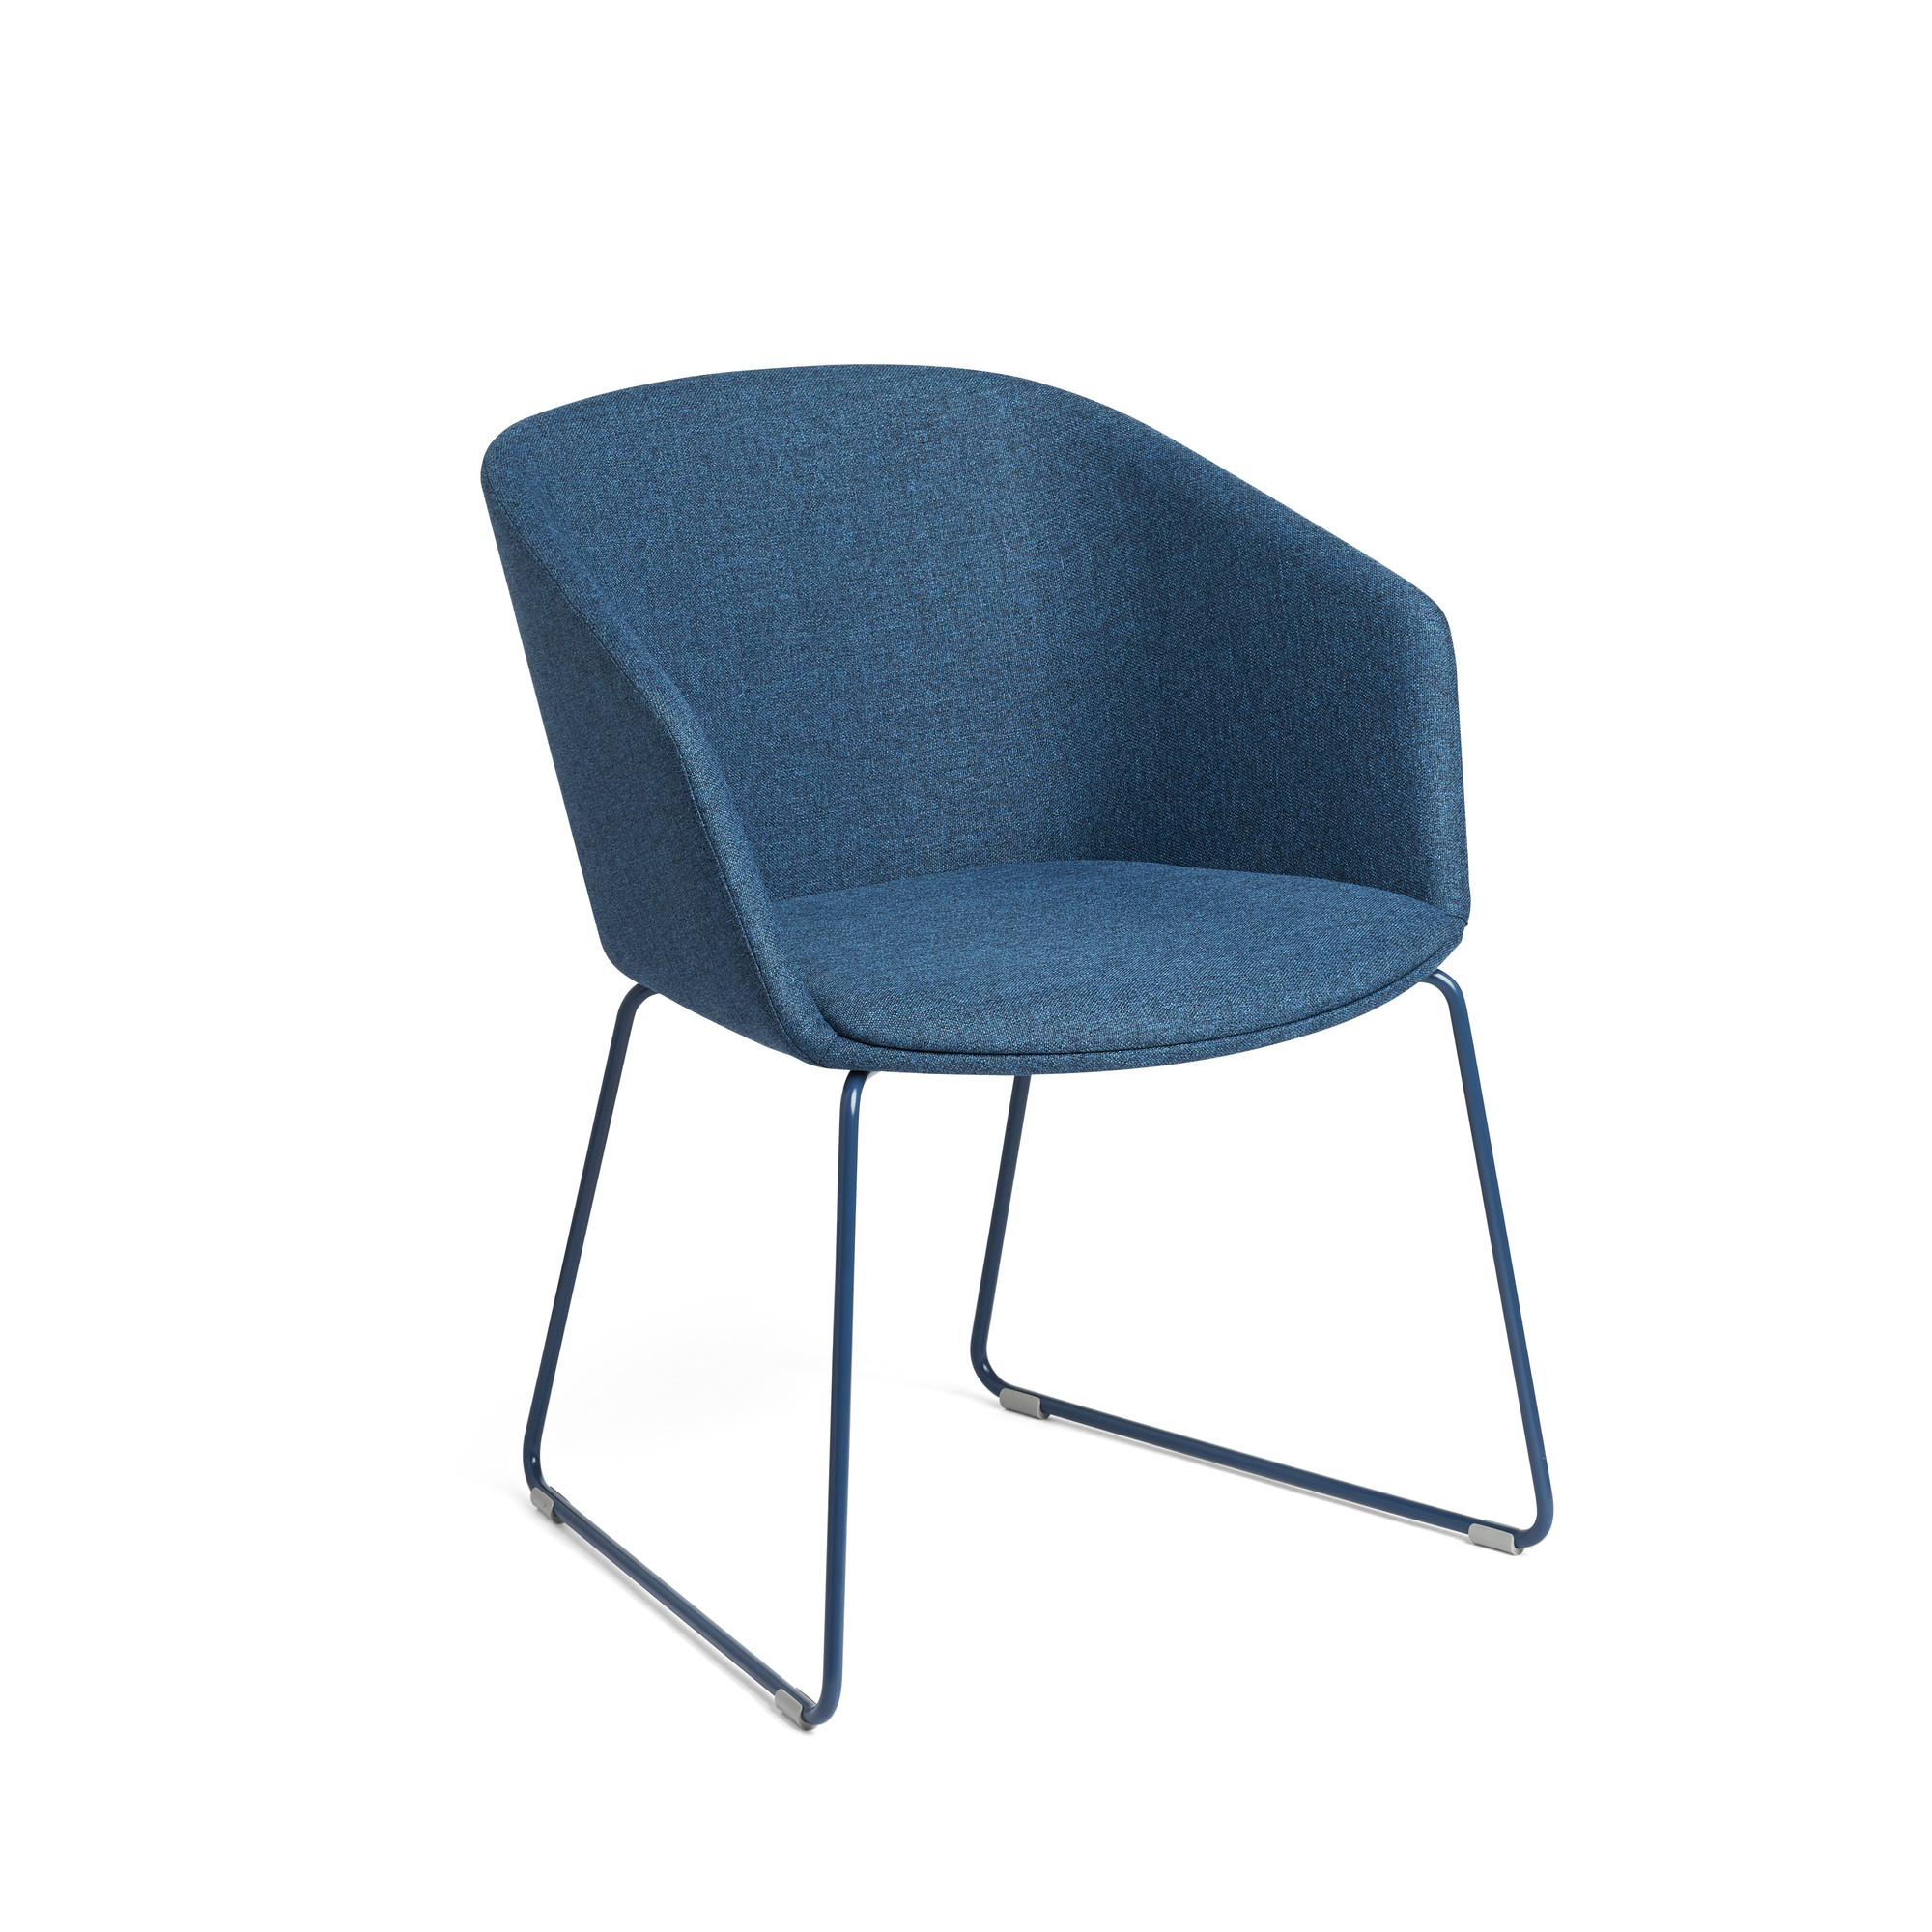 Superior Dark Blue Pitch Sled Chair,Dark Blue,hi Res. Loading Zoom